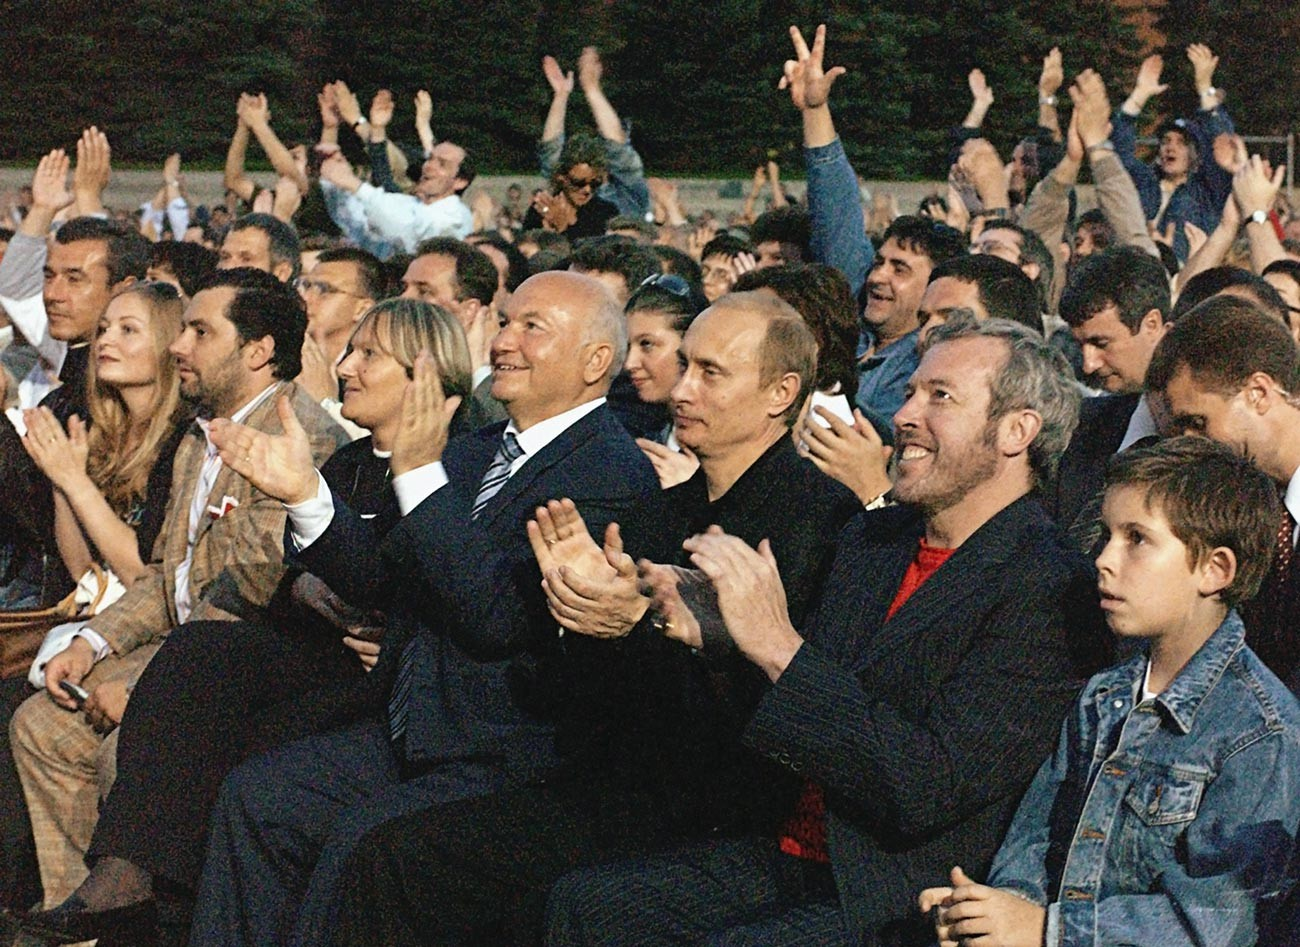 Pictured L-R: Yuri Luzhkov (Moscow mayor at the time), Vladimir Putin and famous Russian rock musician Andrei Makarevich attending McCartney's concert on Red Square